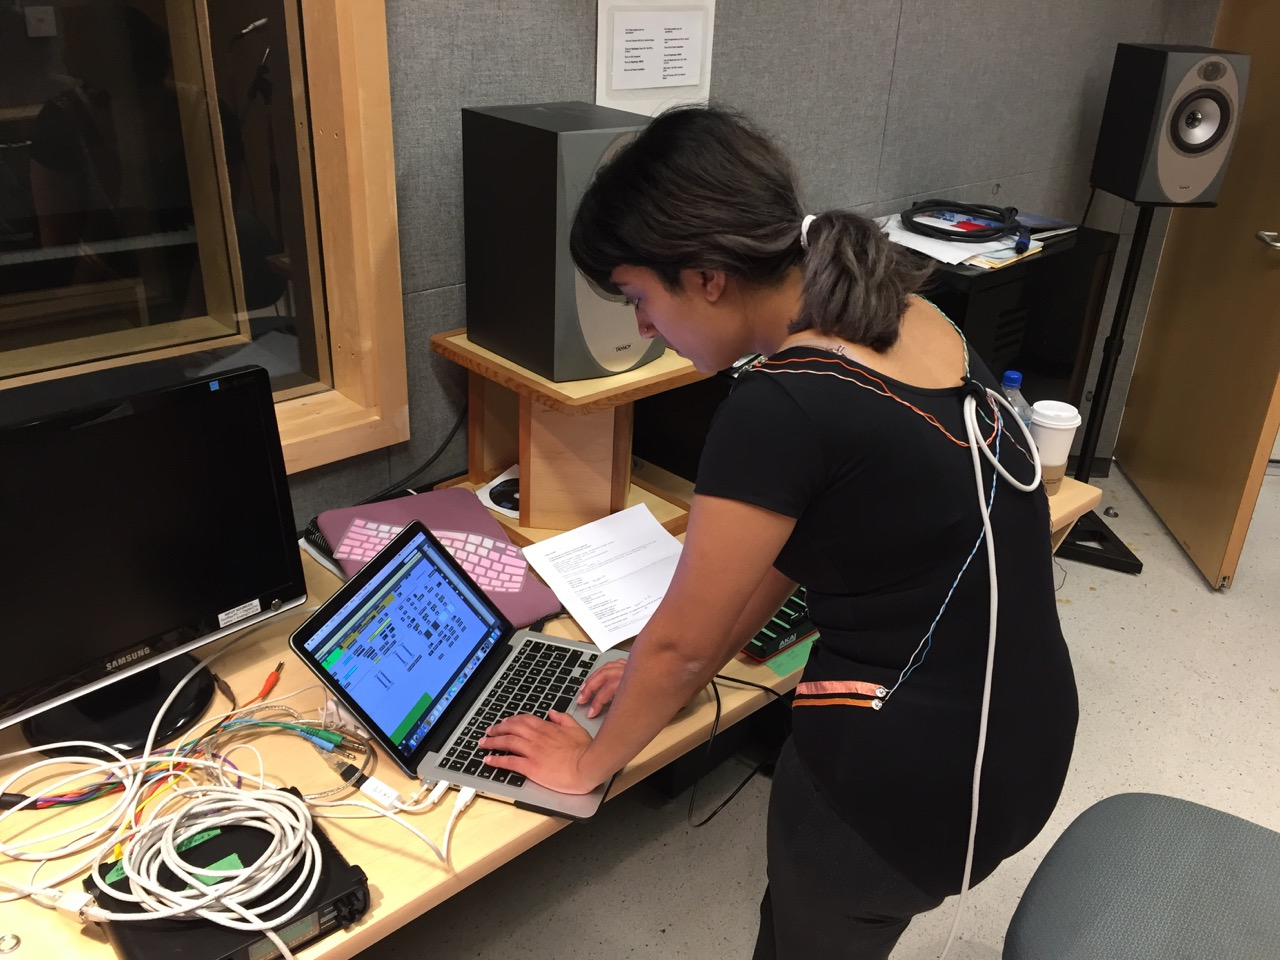 Research and development of the suit and software at the University of British Columbia's Institute for Computing, Information and Cognitive Systems (November 2016)